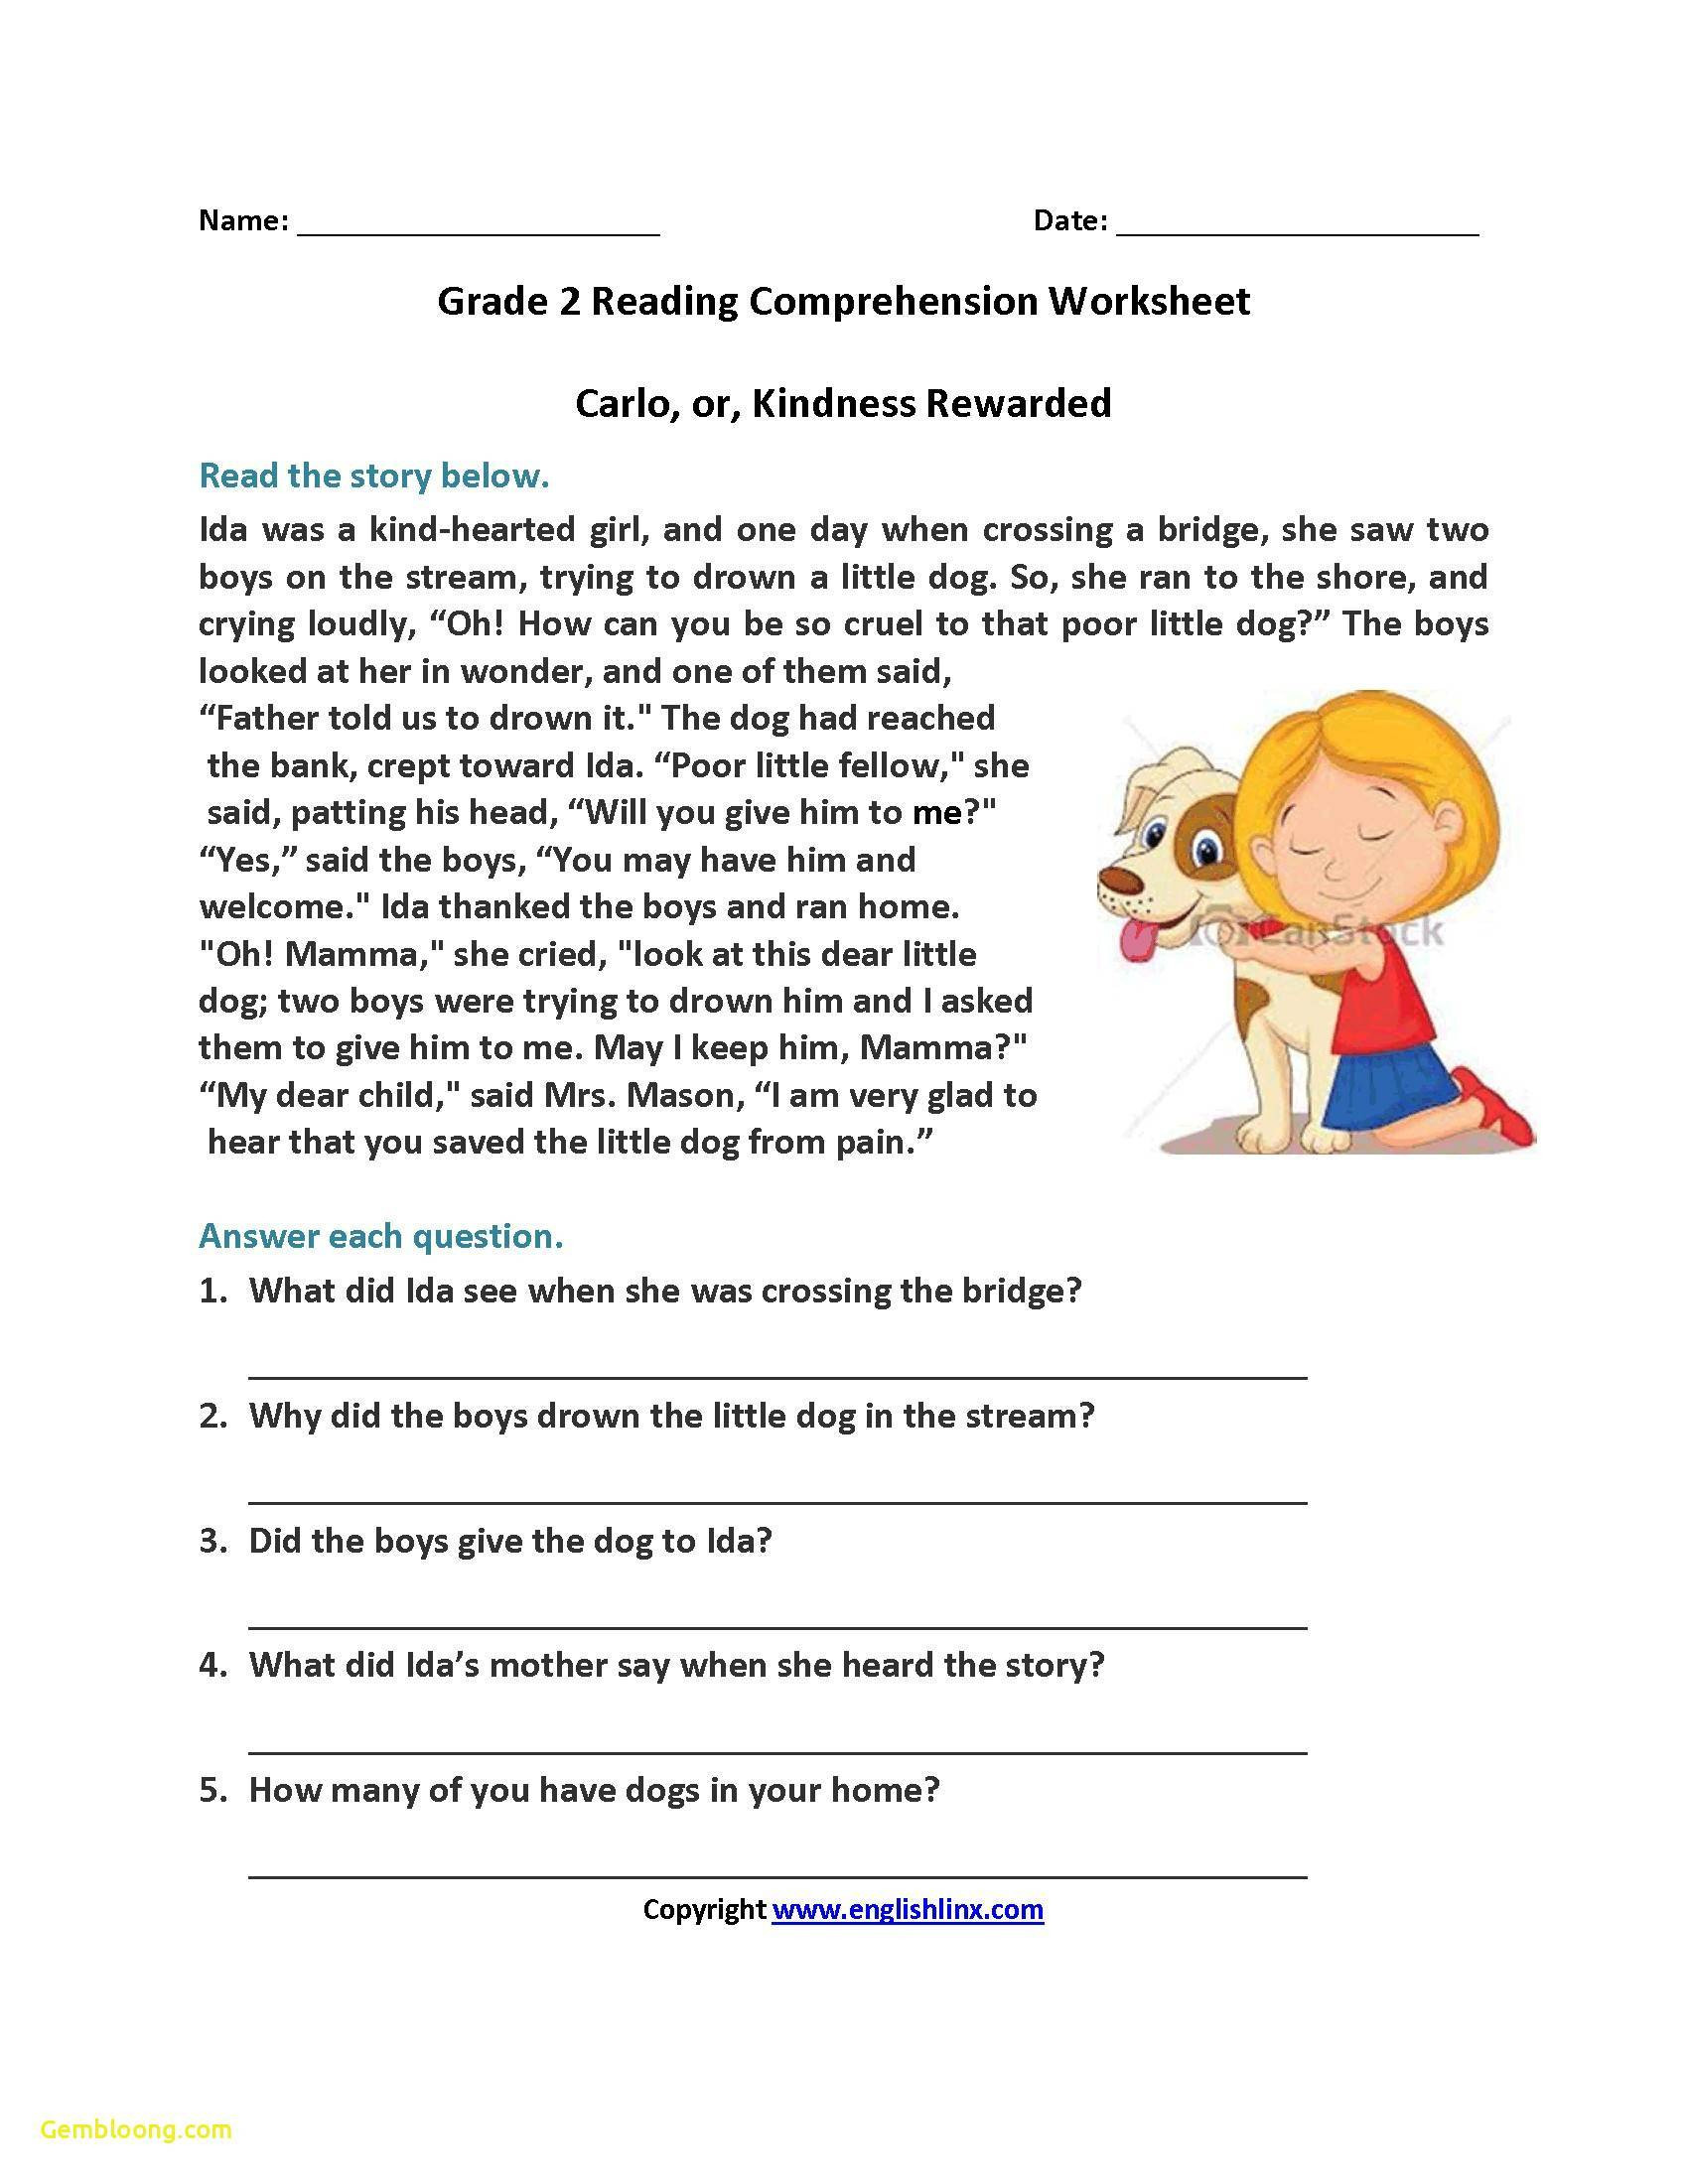 Grade 2 Reading Comprehension Worksheets Math Worksheet Year 1 Reading Prehension Worksheets